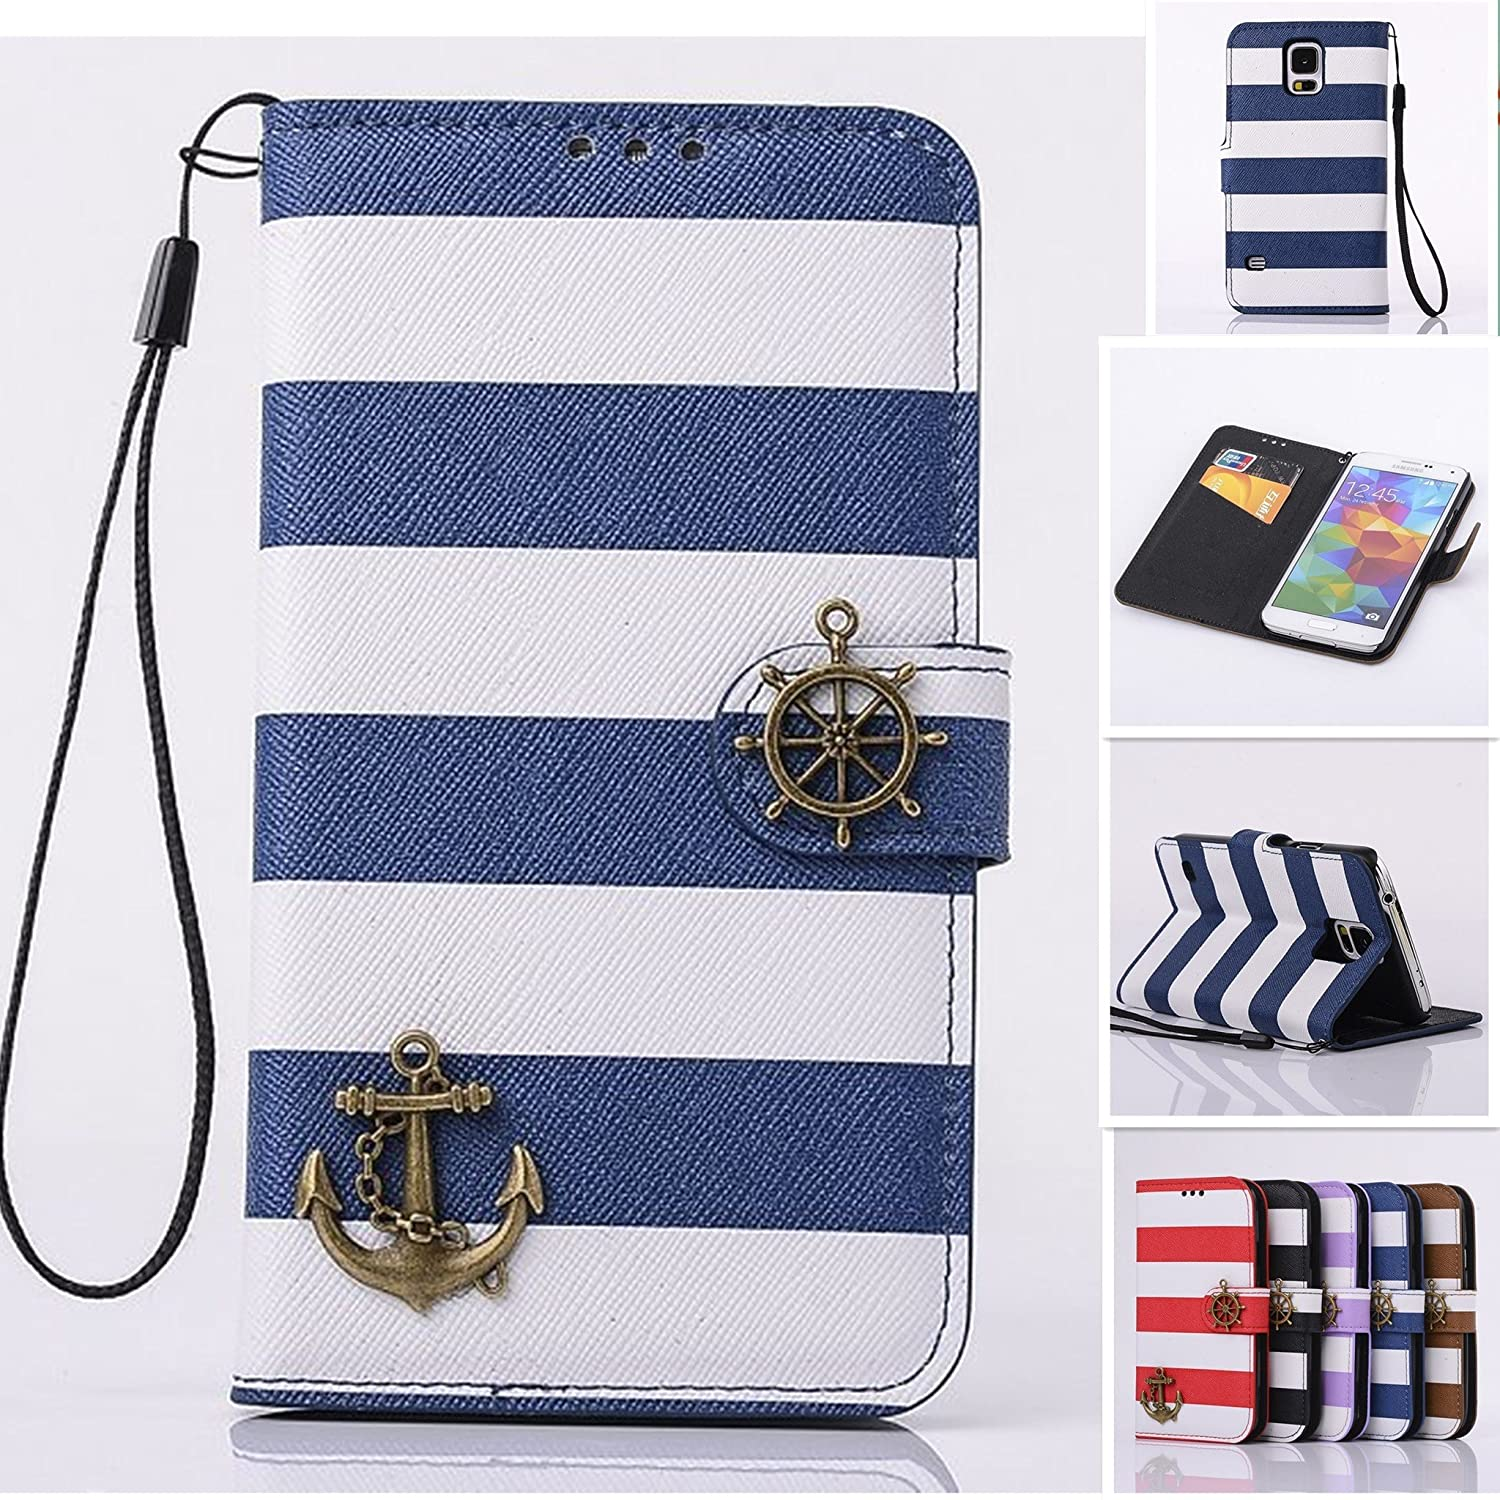 moahhally Luxury Leather Wristlet Rudder Navy Stripes Anchor Stand Flip Wallet Skin Phone Case Cover (Black,iPhone 6S Plus) 80%OFF